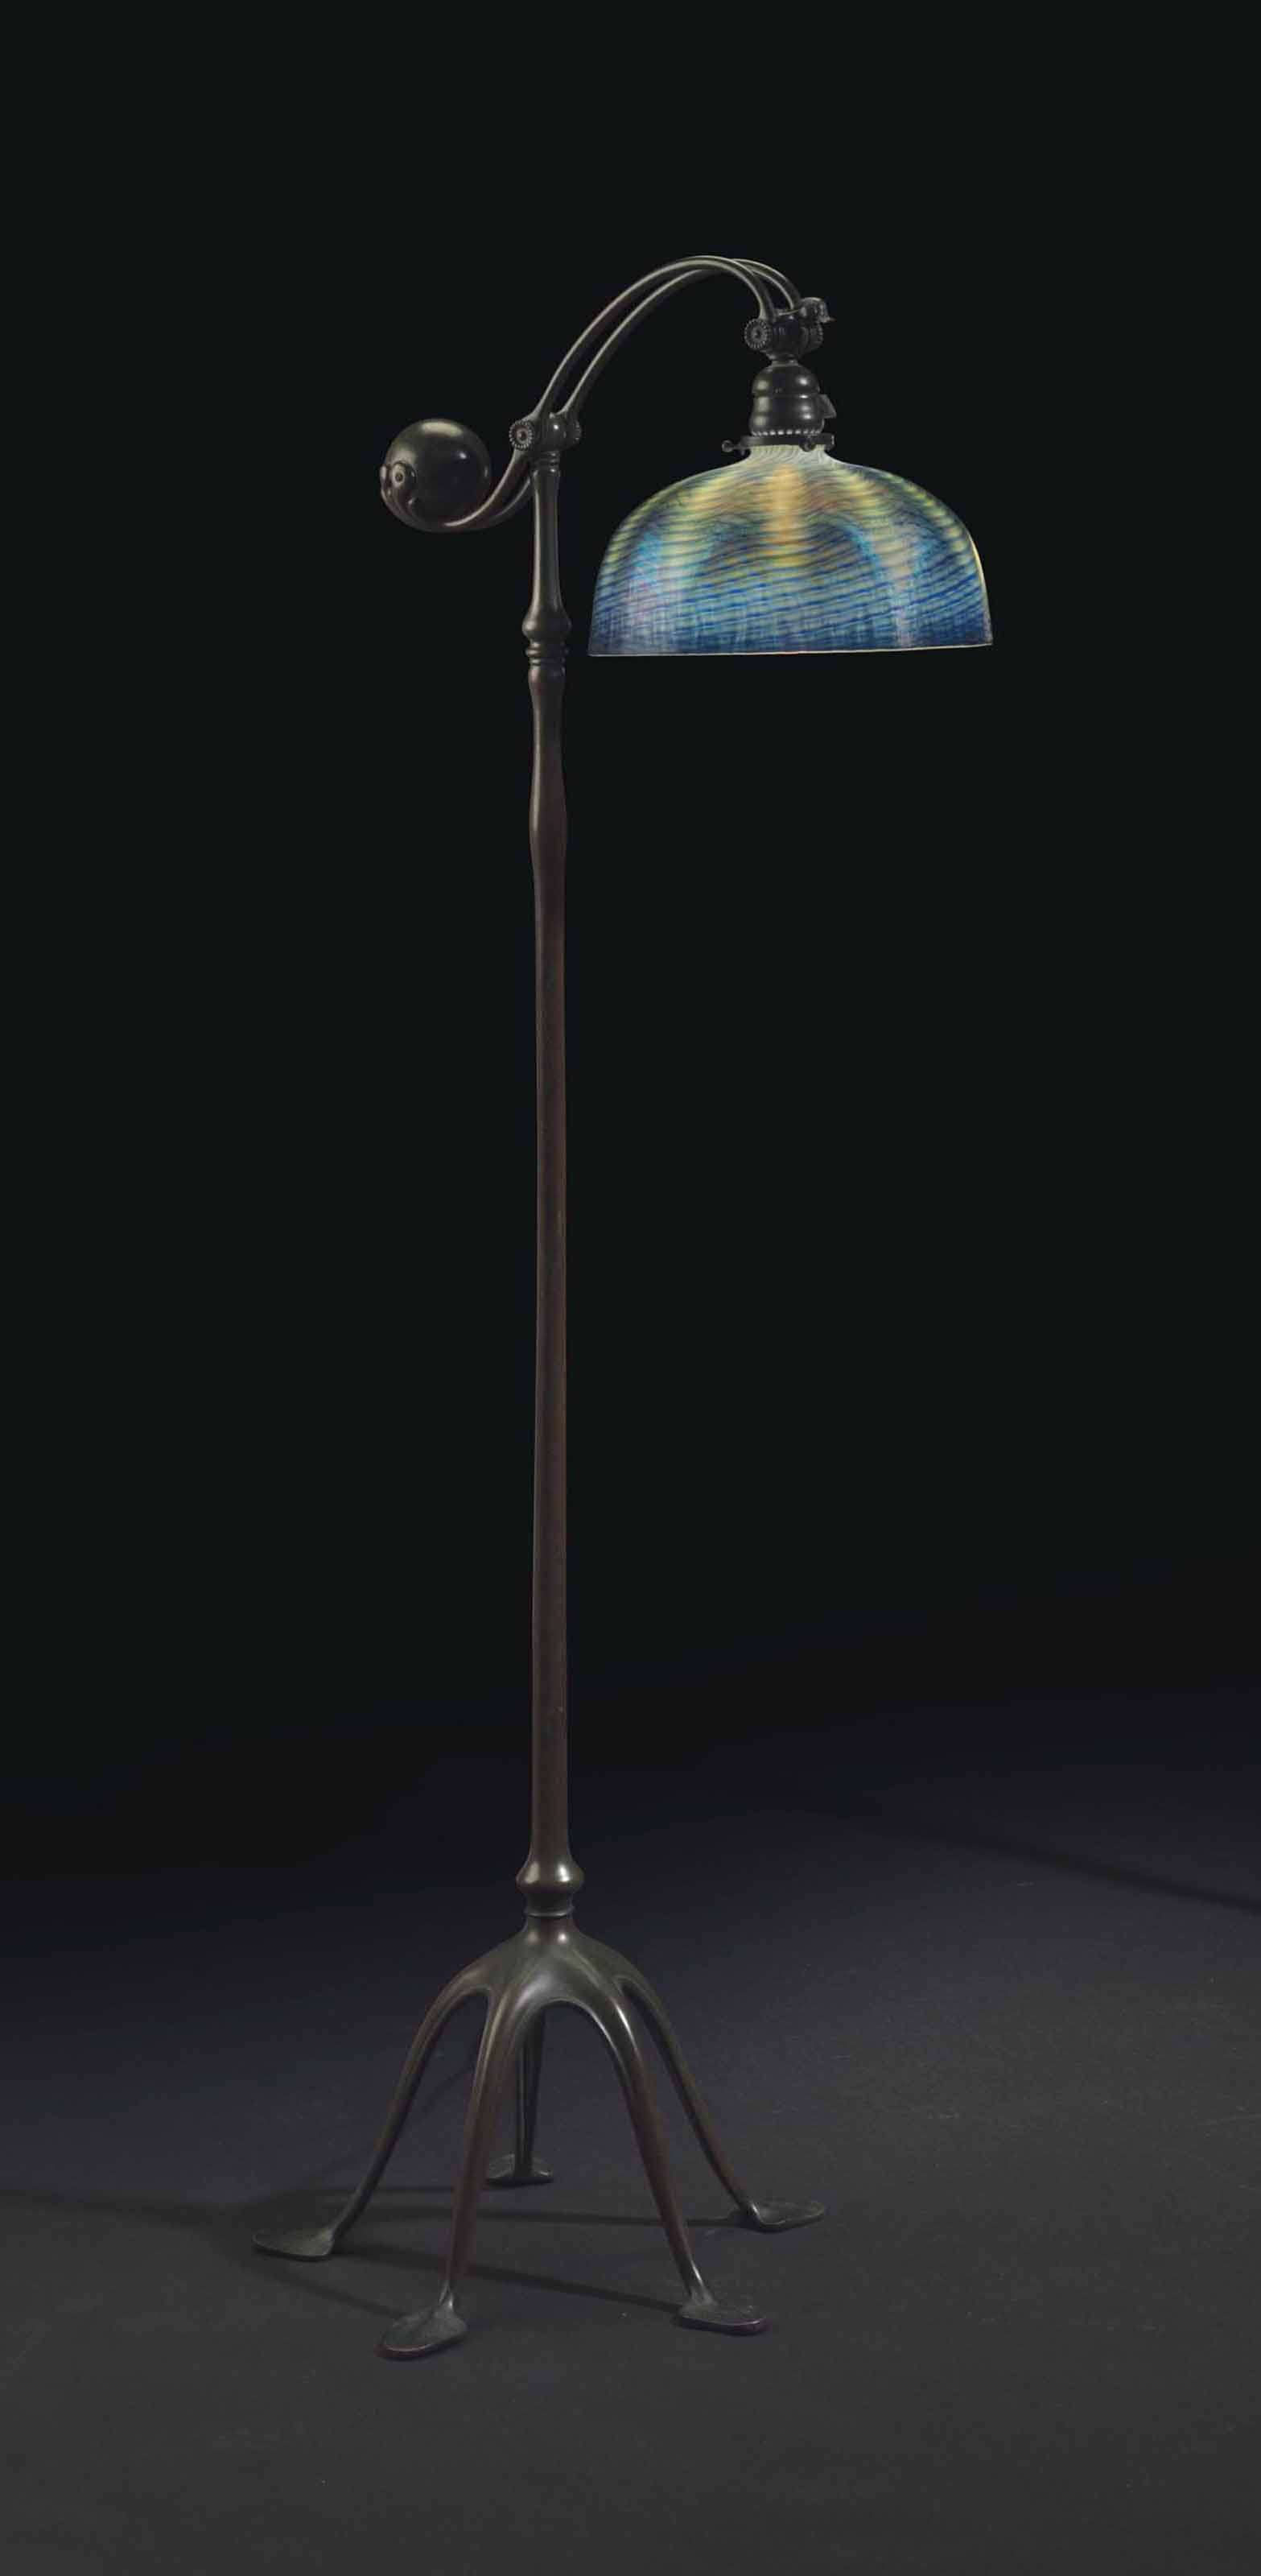 Tiffany studios a counterbalance floor lamp circa 1910 1900s lot 131 aloadofball Image collections